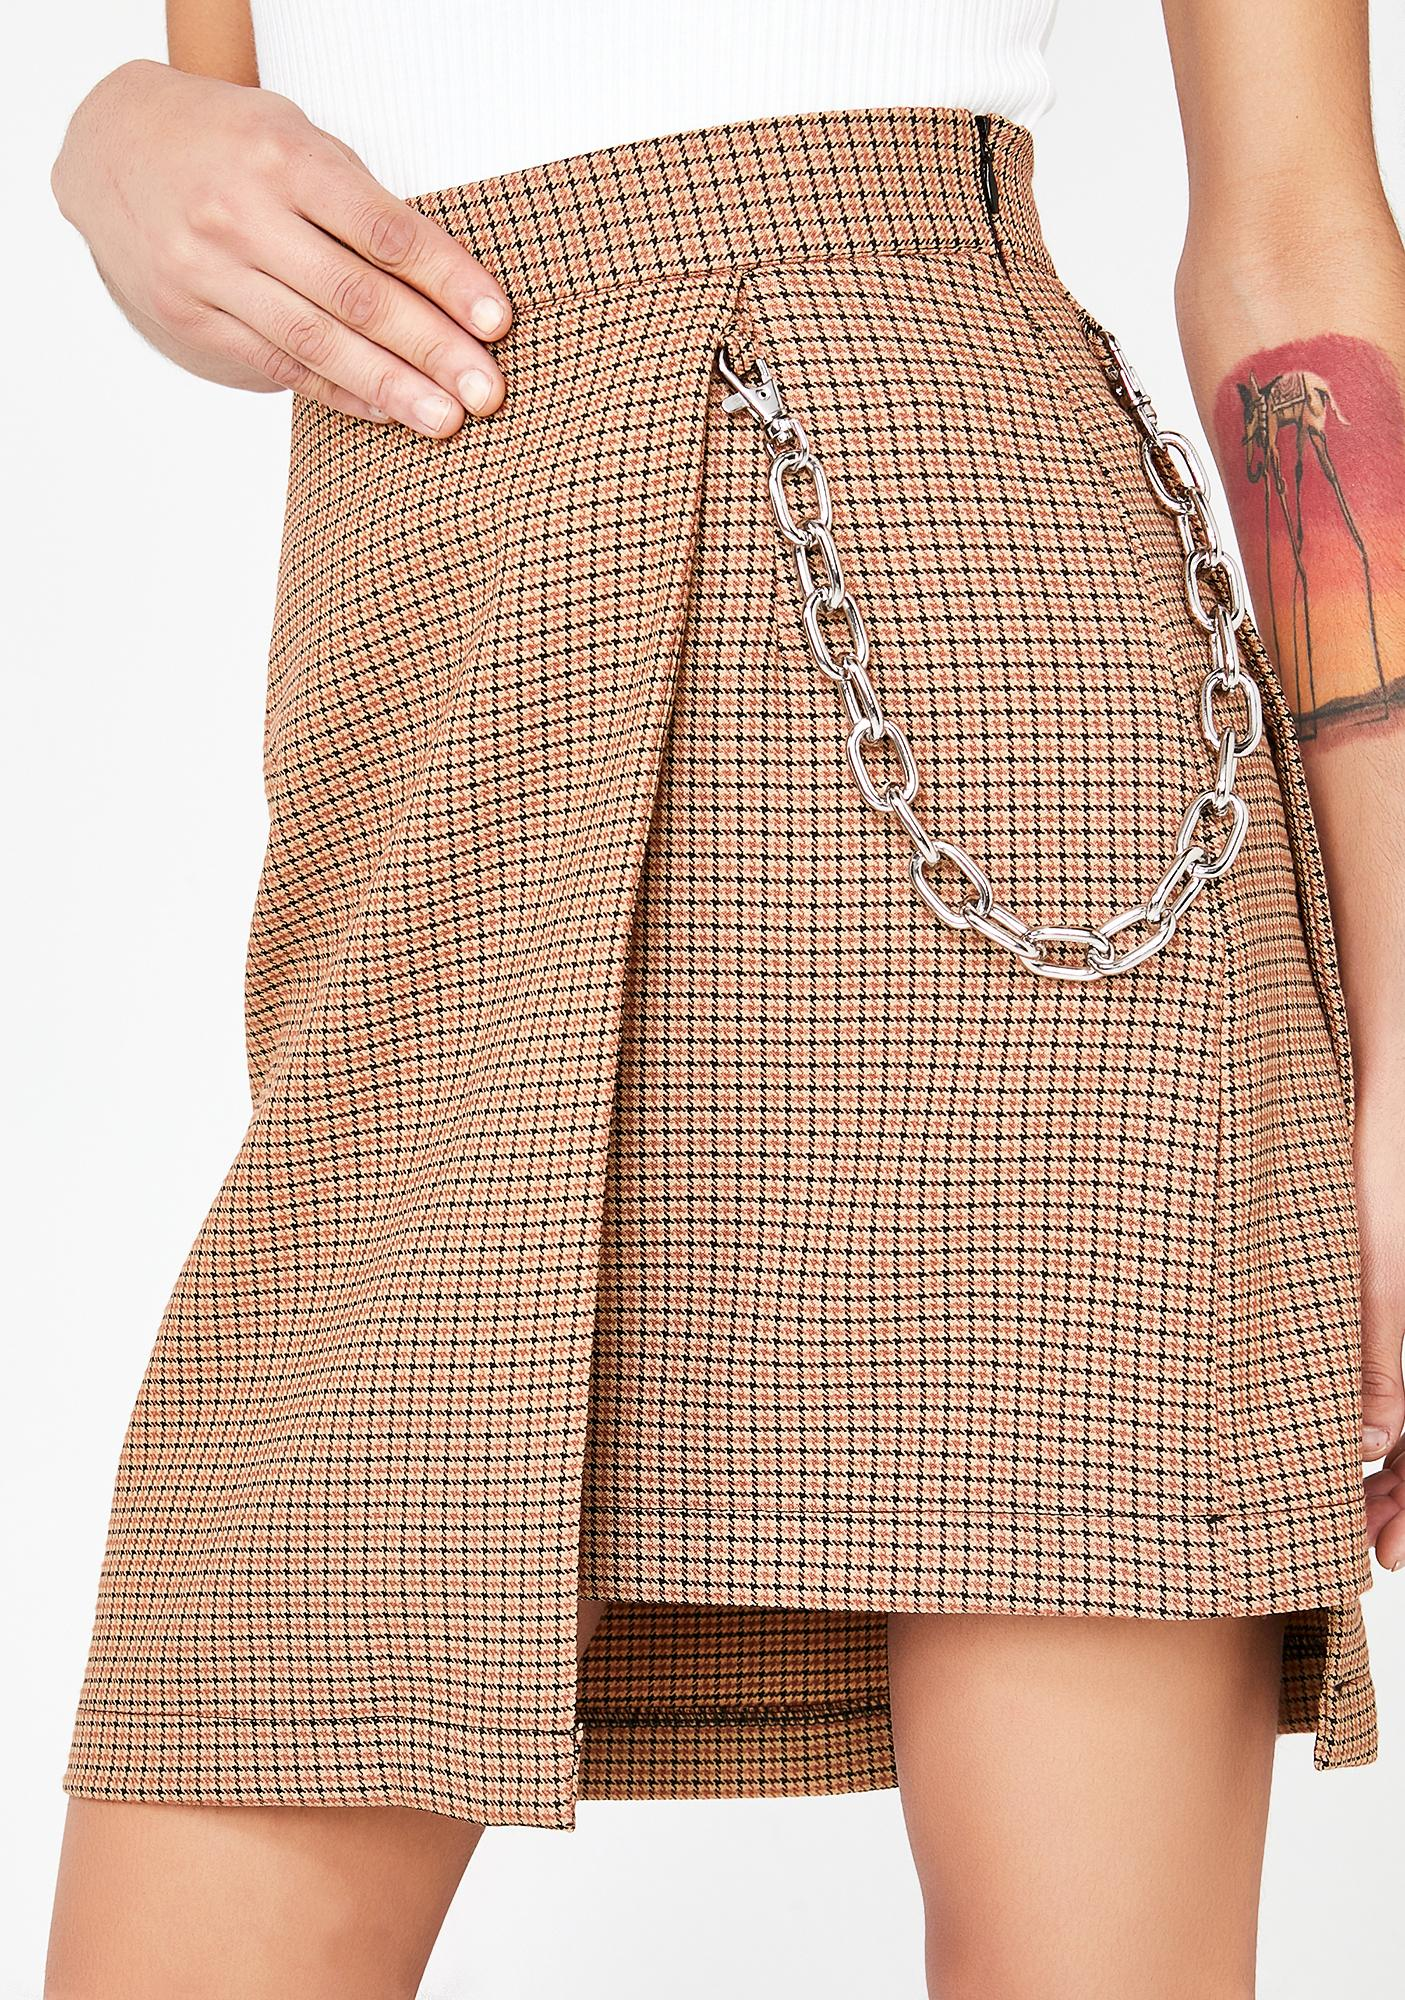 The Ragged Priest Recall Skirt